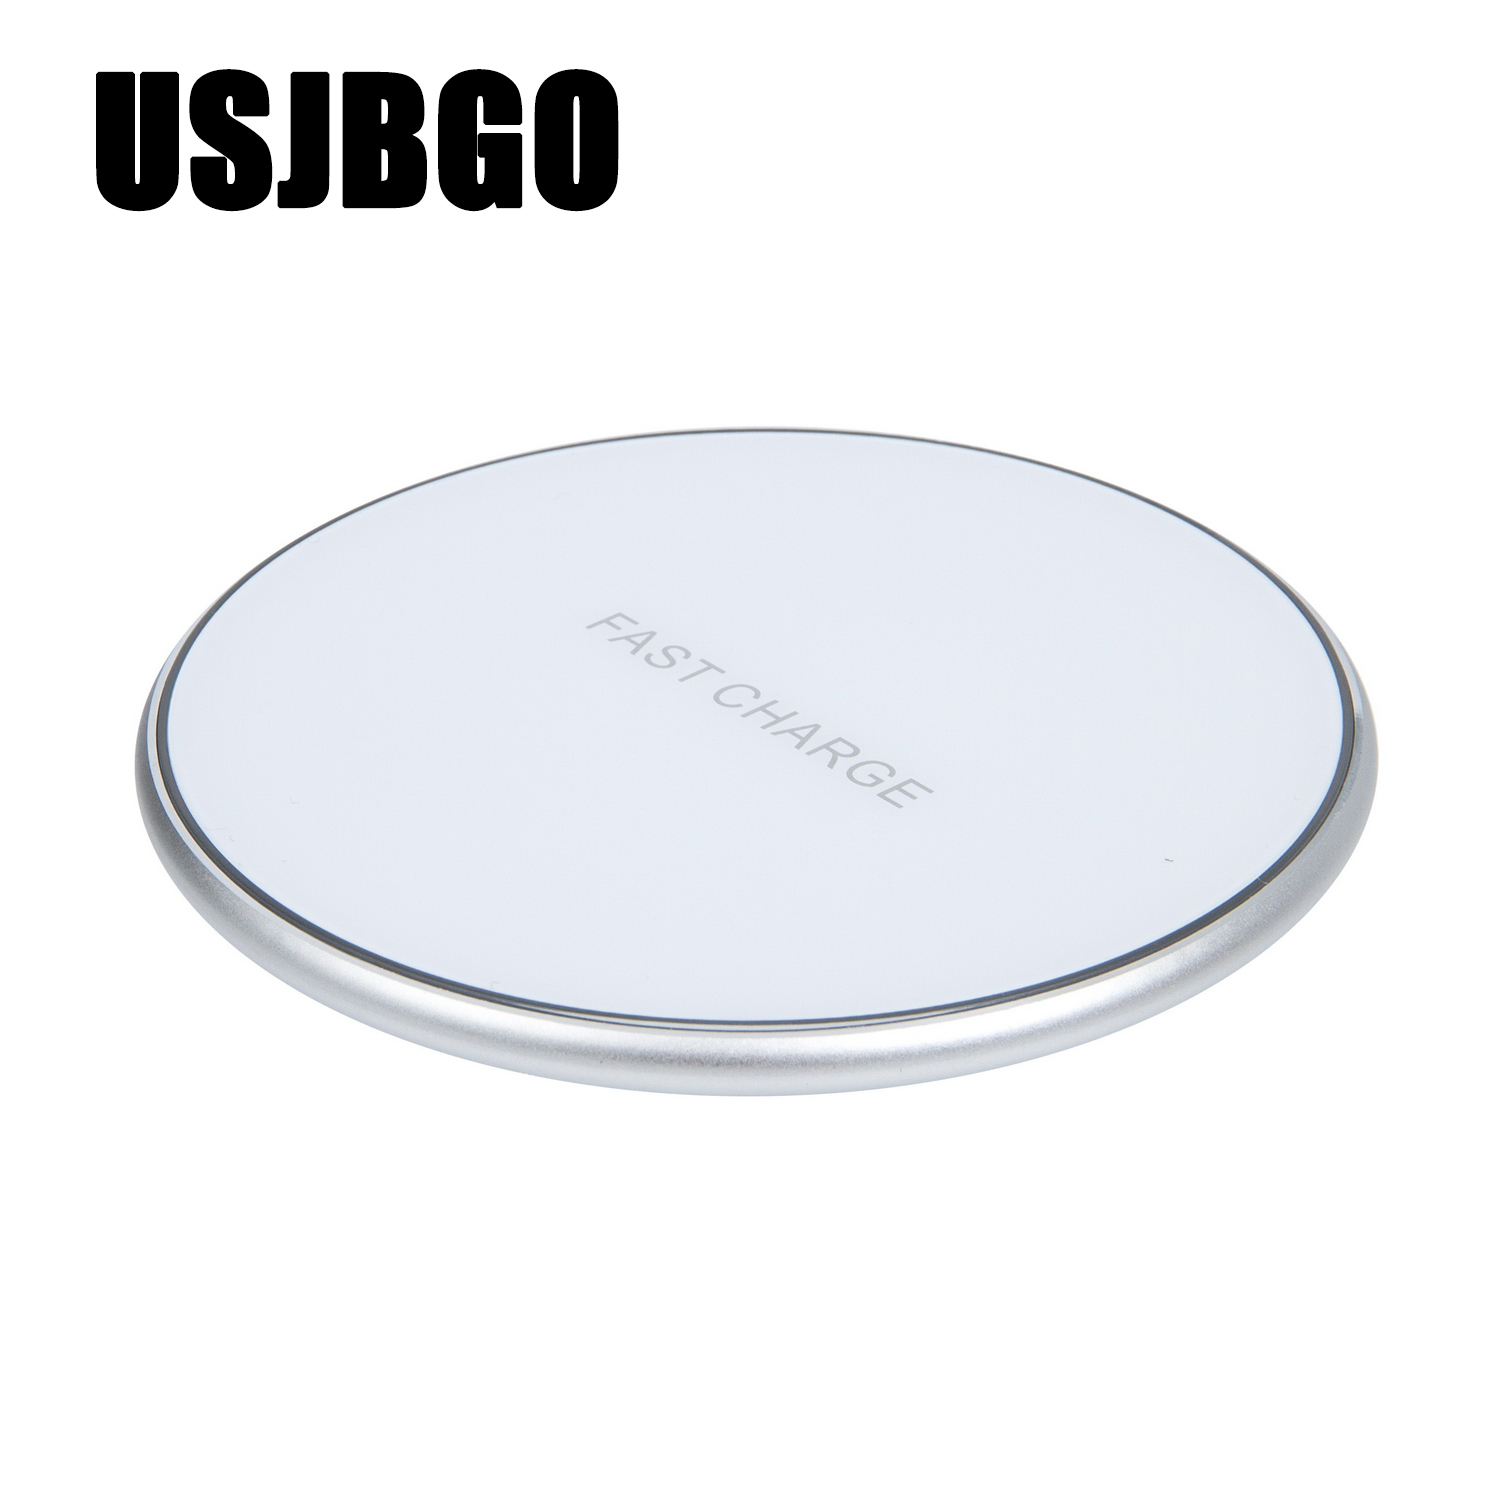 USJBGO New QI wireless charger for Apple Huawei mobile phone 10W ultra-thin round fast charging gift customization